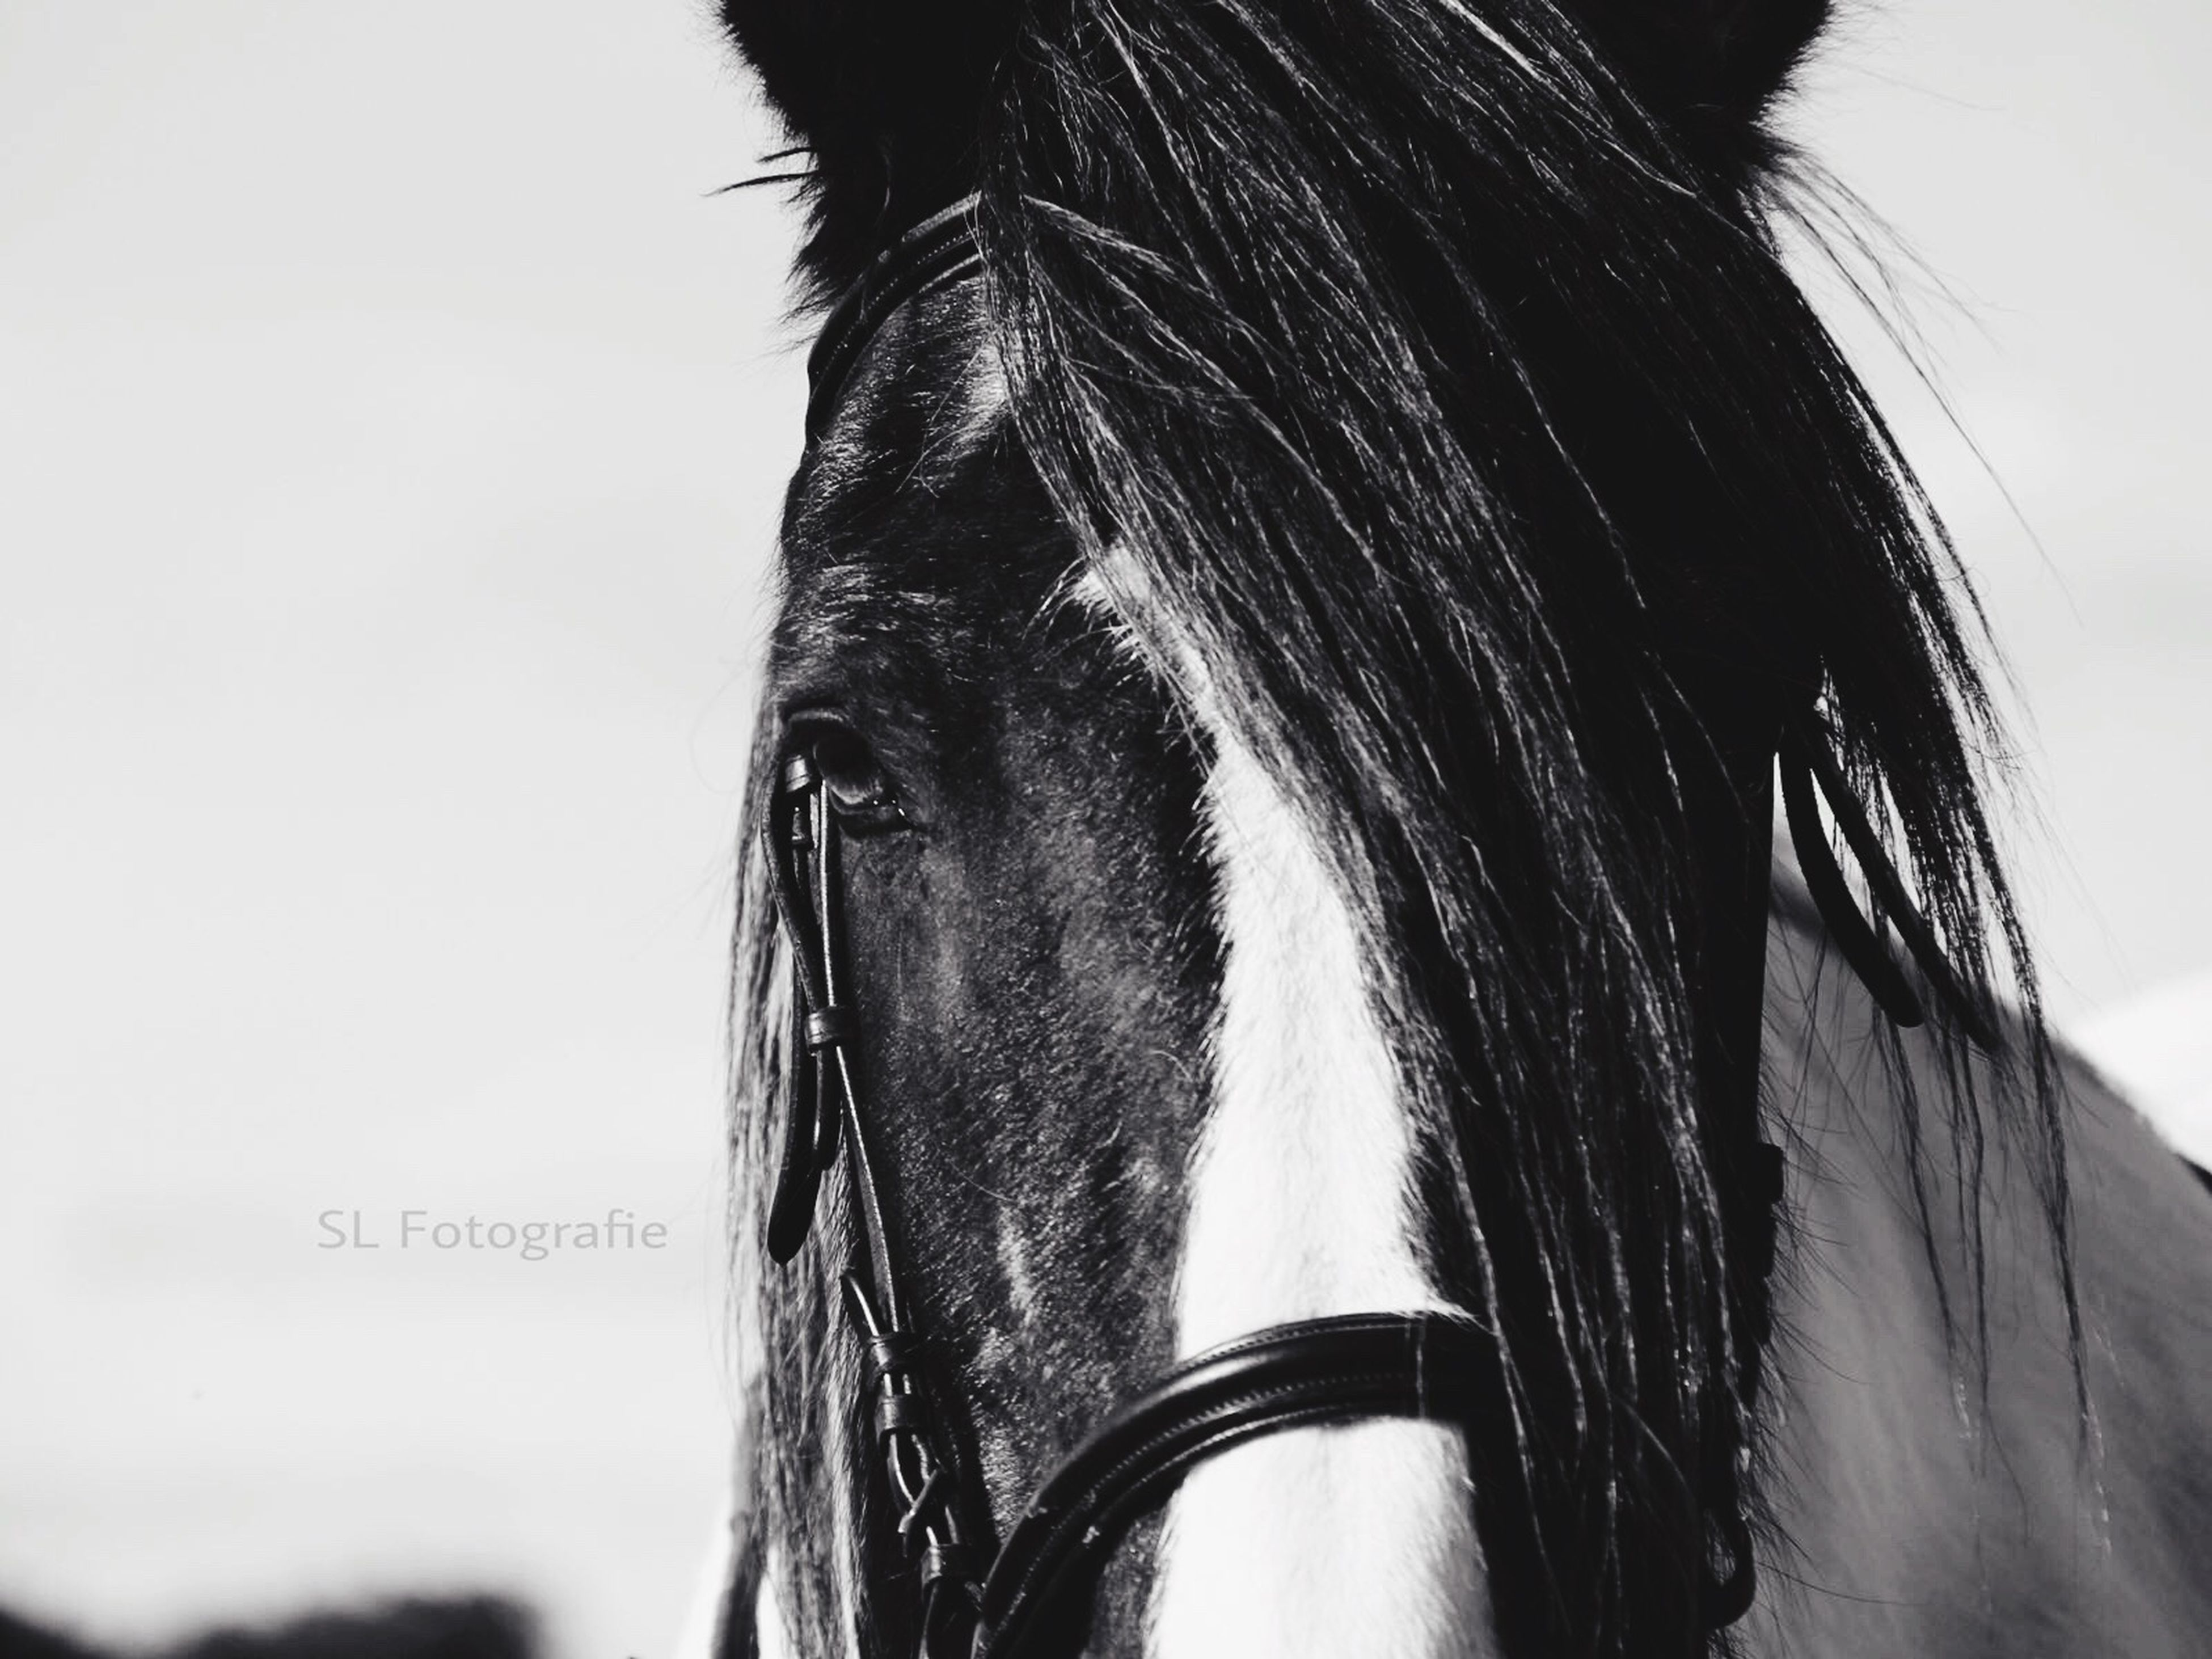 horse, close-up, animal body part, part of, domestic animals, livestock, mammal, herbivorous, animal hair, bridle, zoology, outdoors, focus on foreground, mane, extreme close up, no people, studio shot